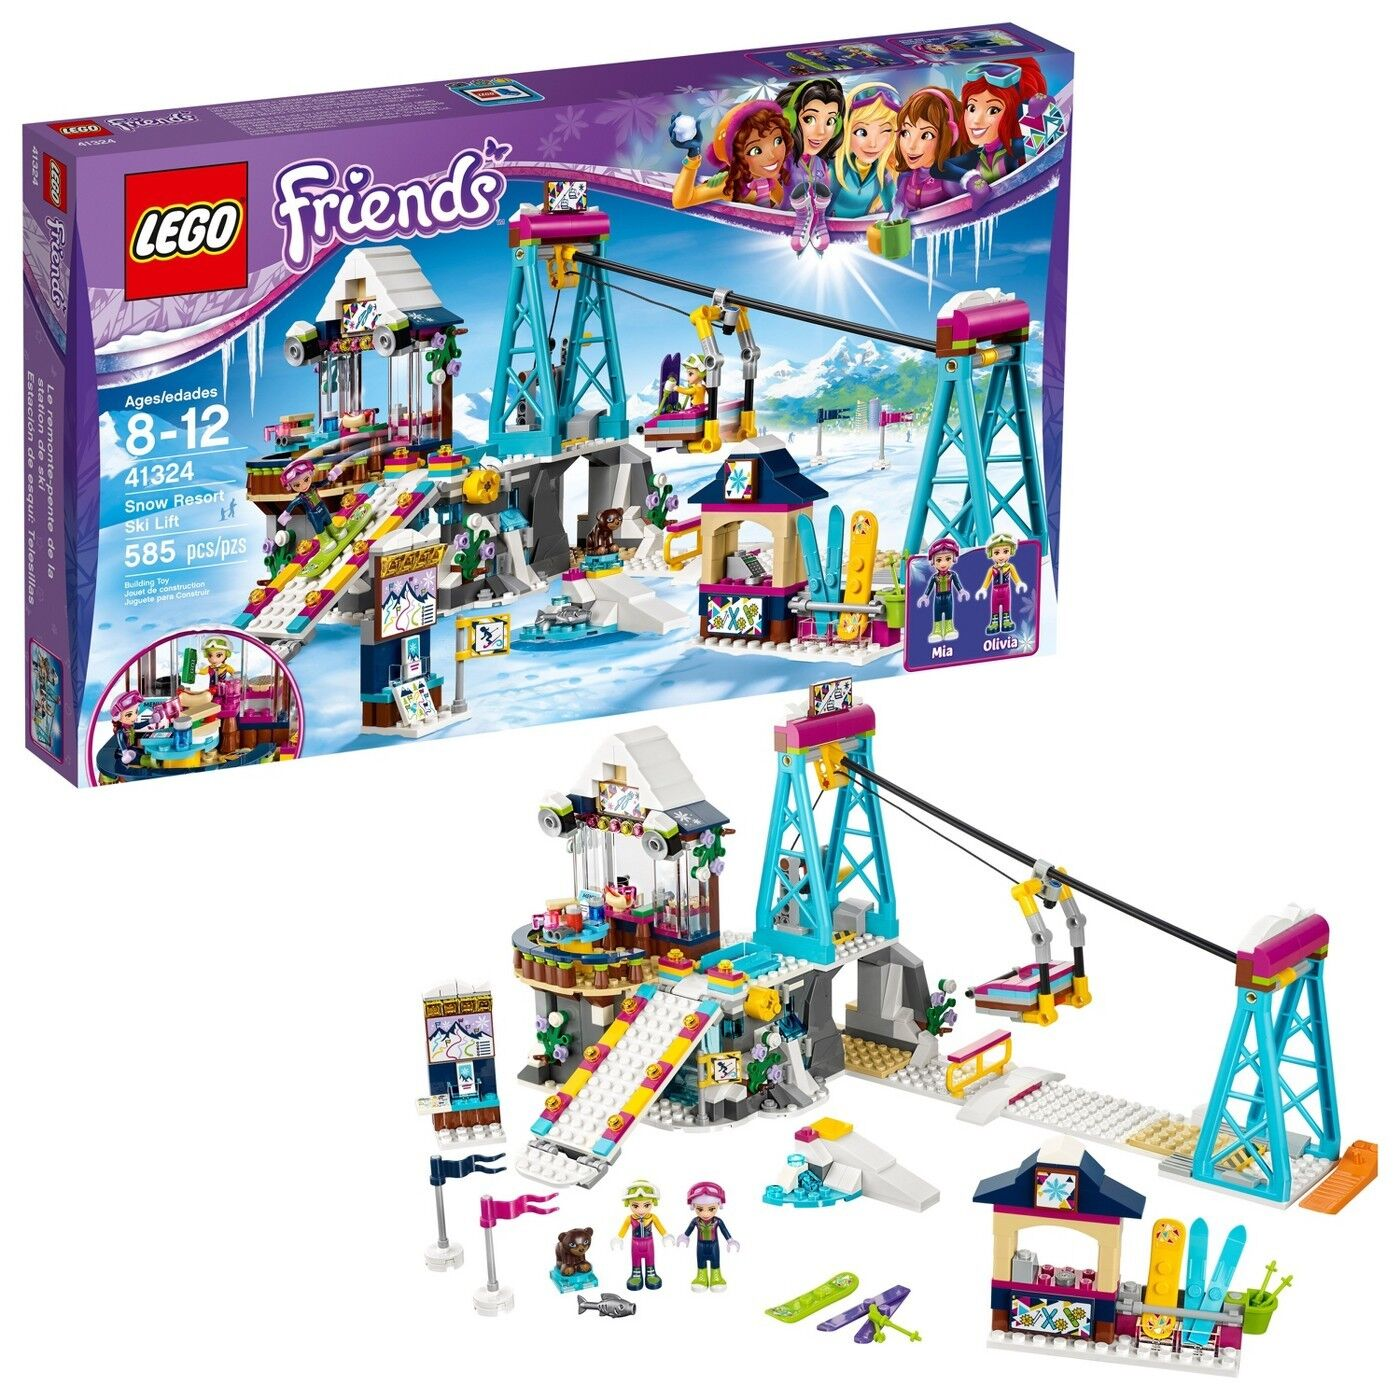 LEGO 41324 Friends Heartlake Snow Resort Ski Lift 585 Pieces Pieces Pieces New In Sealed Box  fefd9c